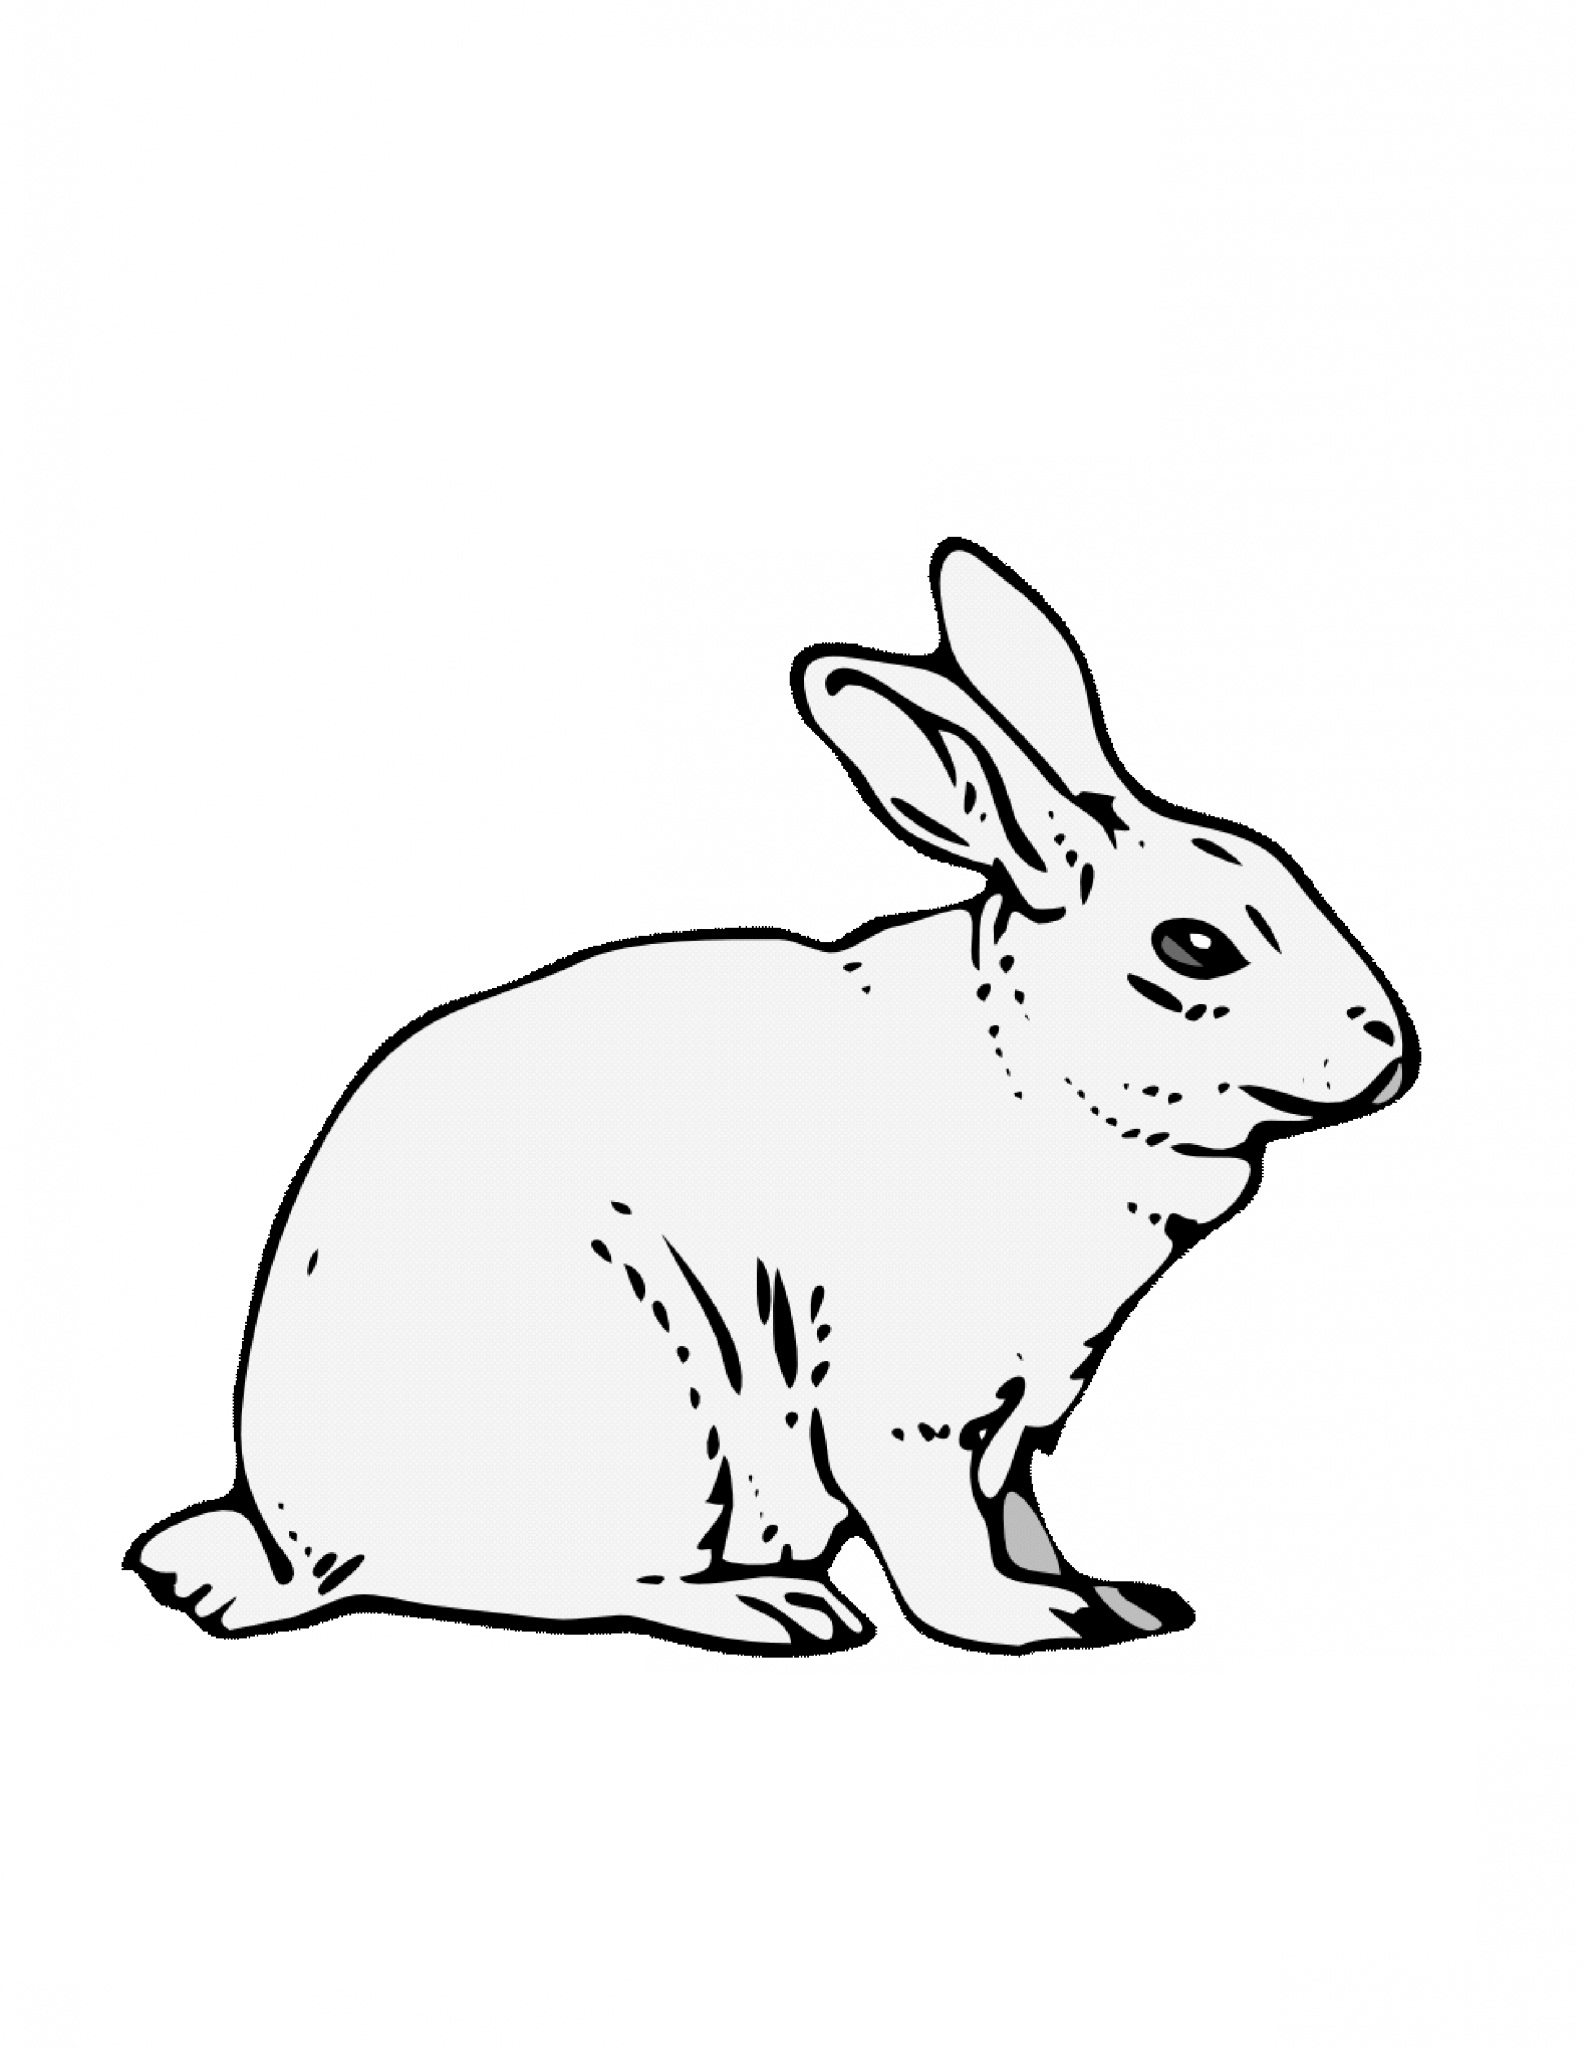 Free printable coloring pages rabbits - Velveteen Rabbit Coloring Pages